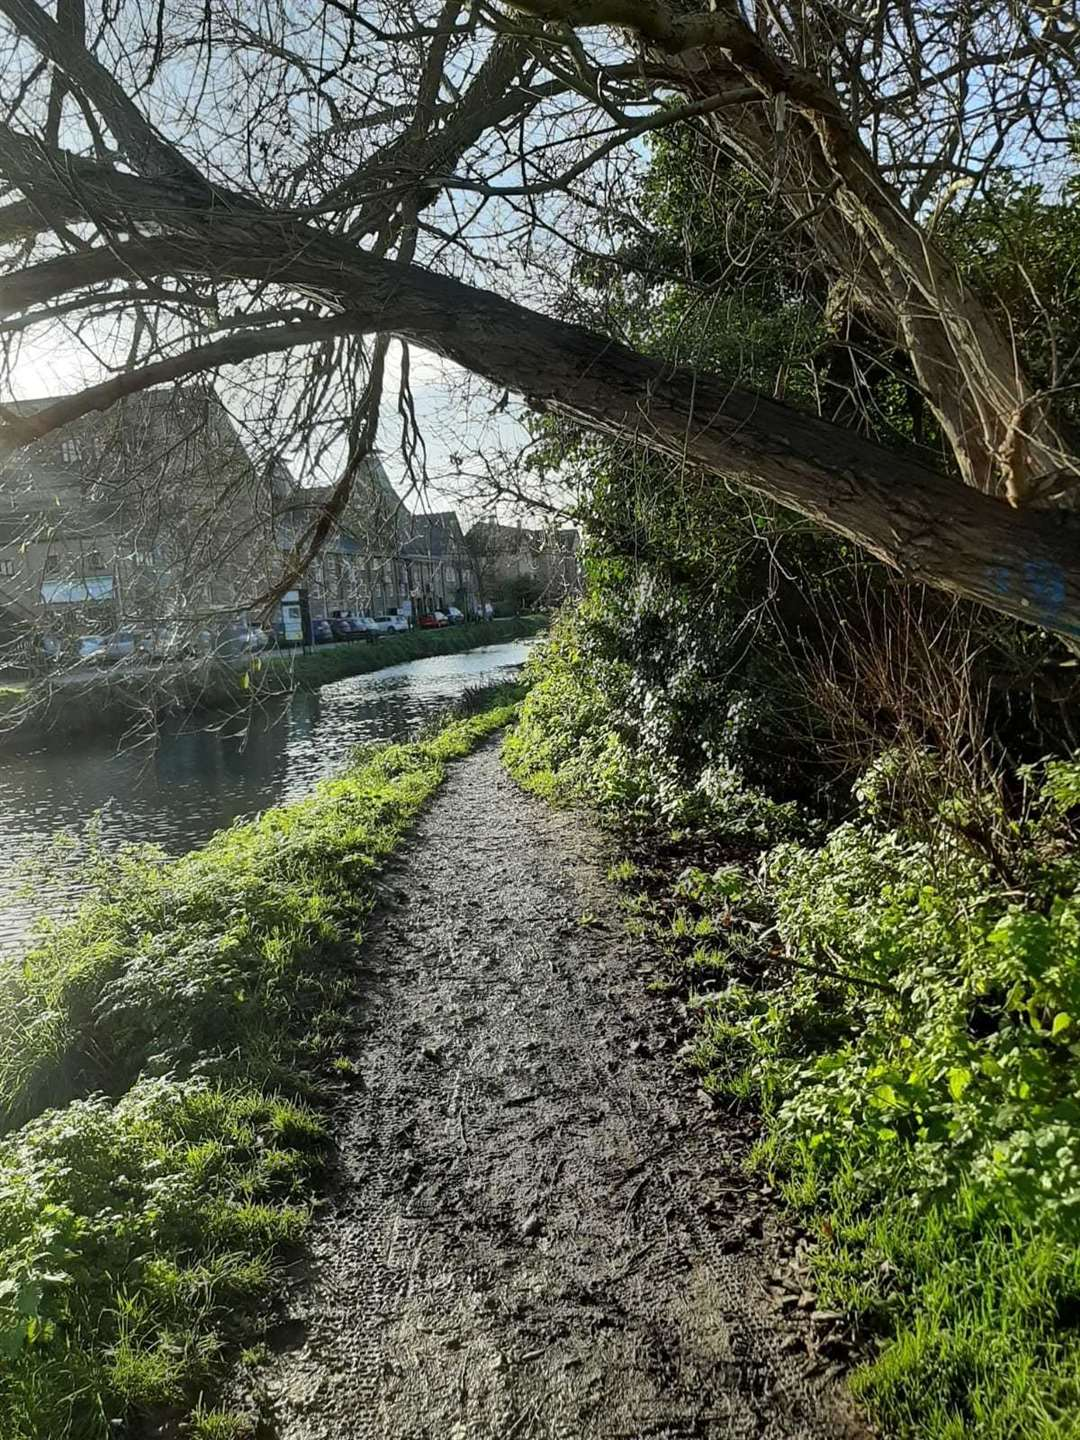 The slippery tow path (43208832)